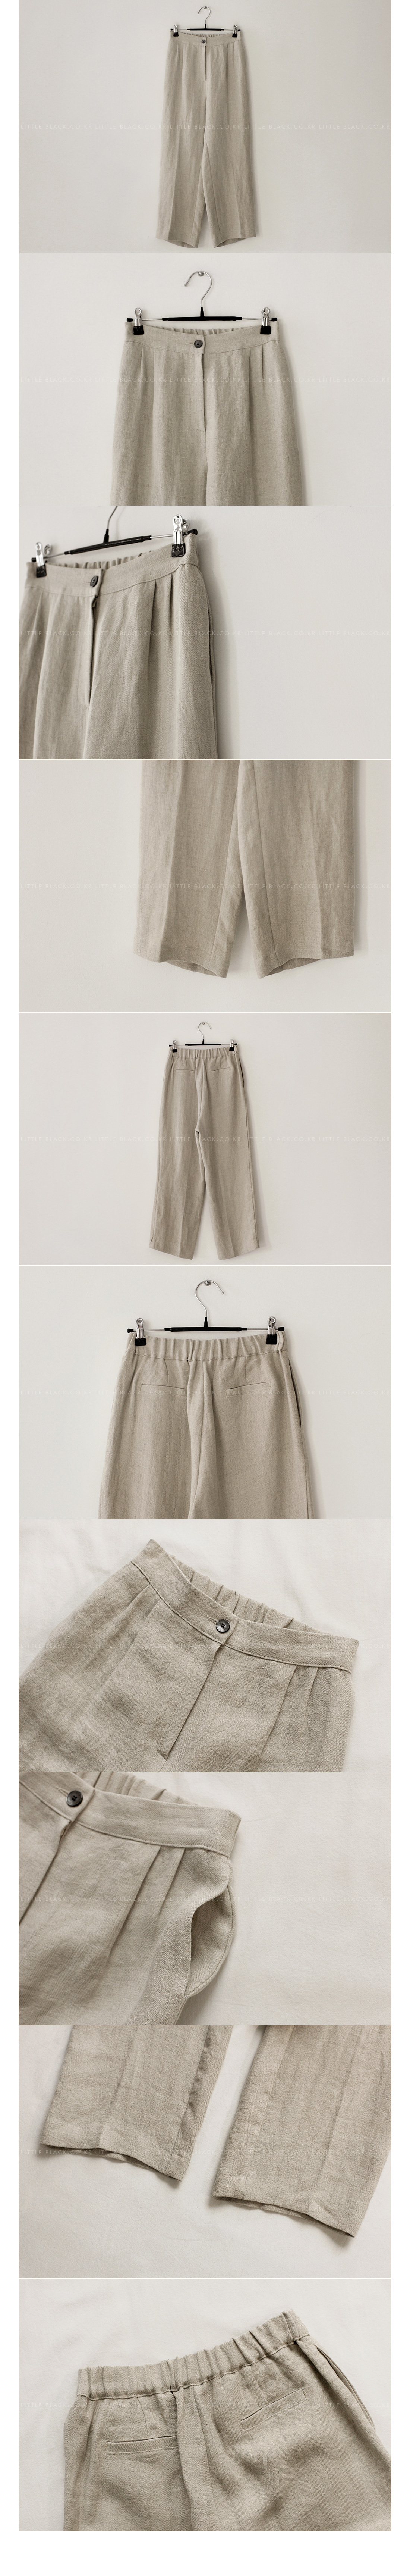 Herringbone Linen Slacks|